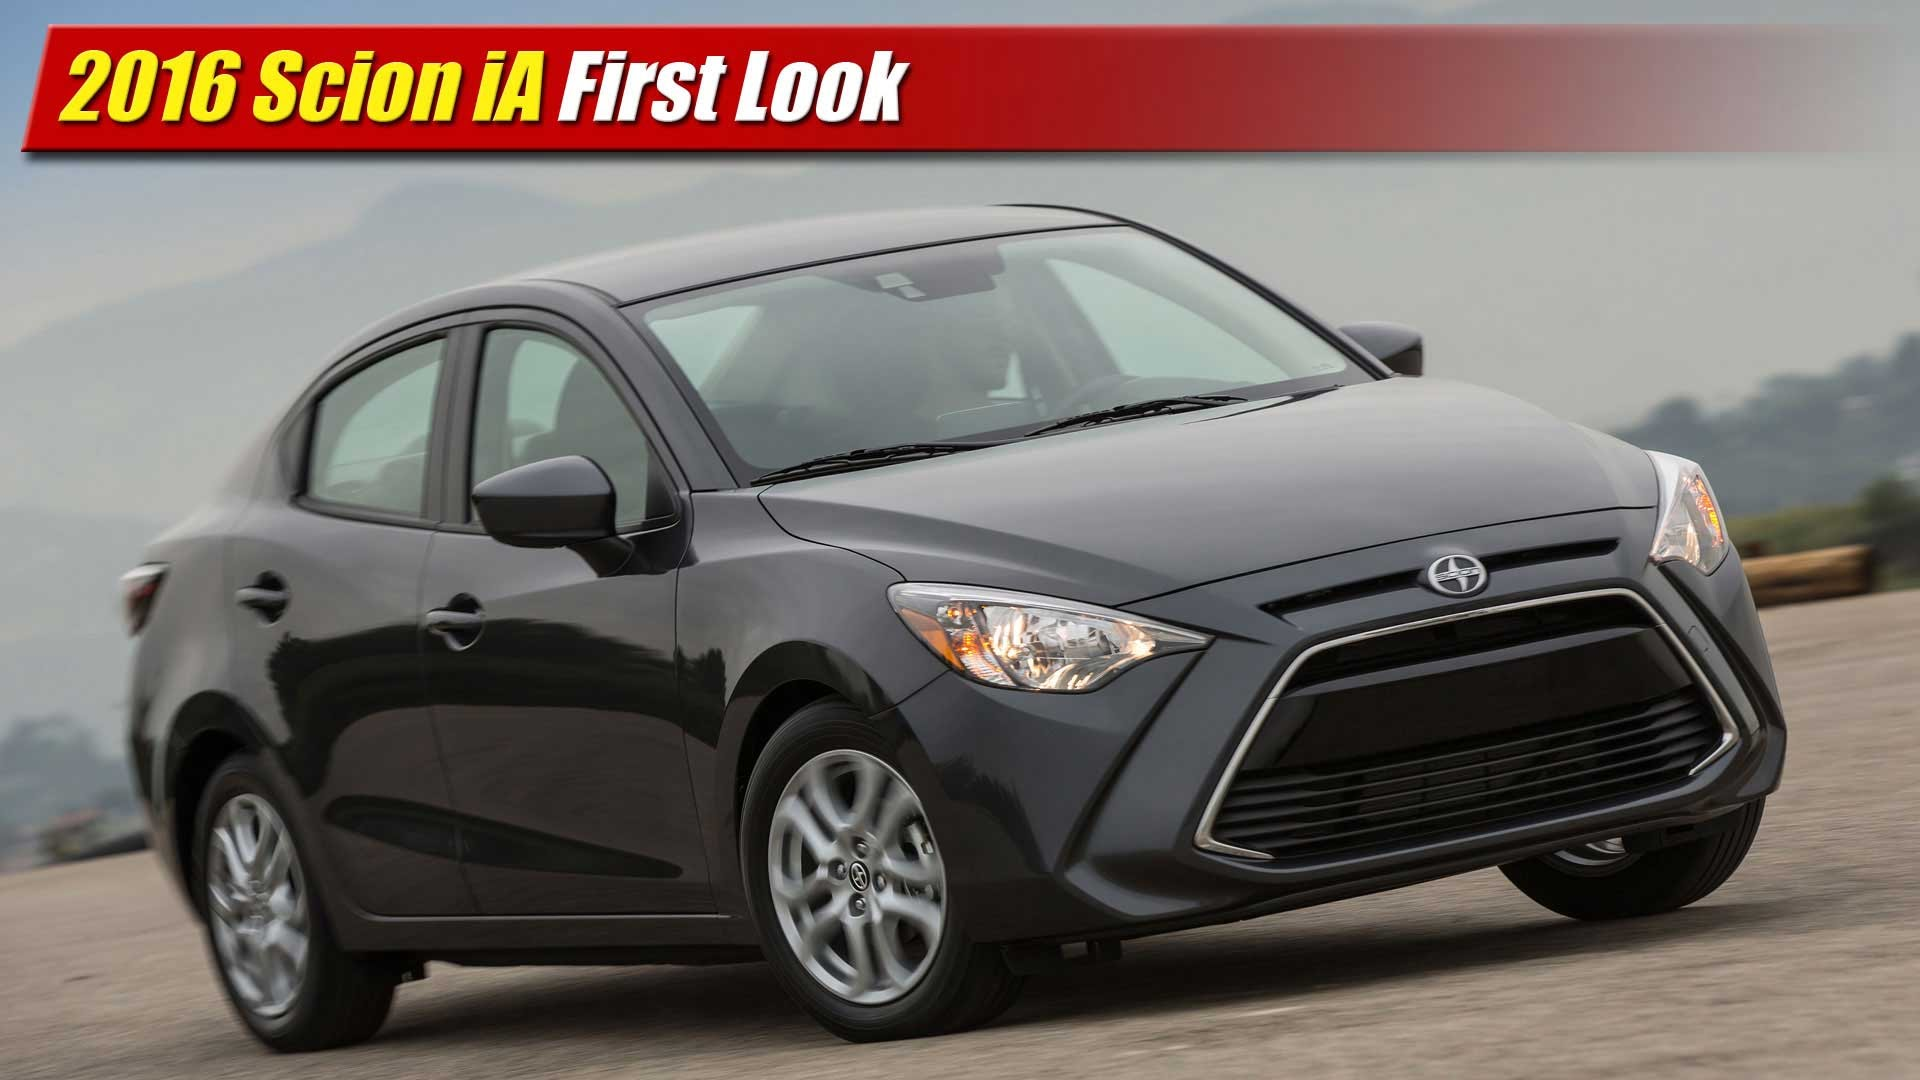 New First Look 2016 Scion IA  TestDrivenTV